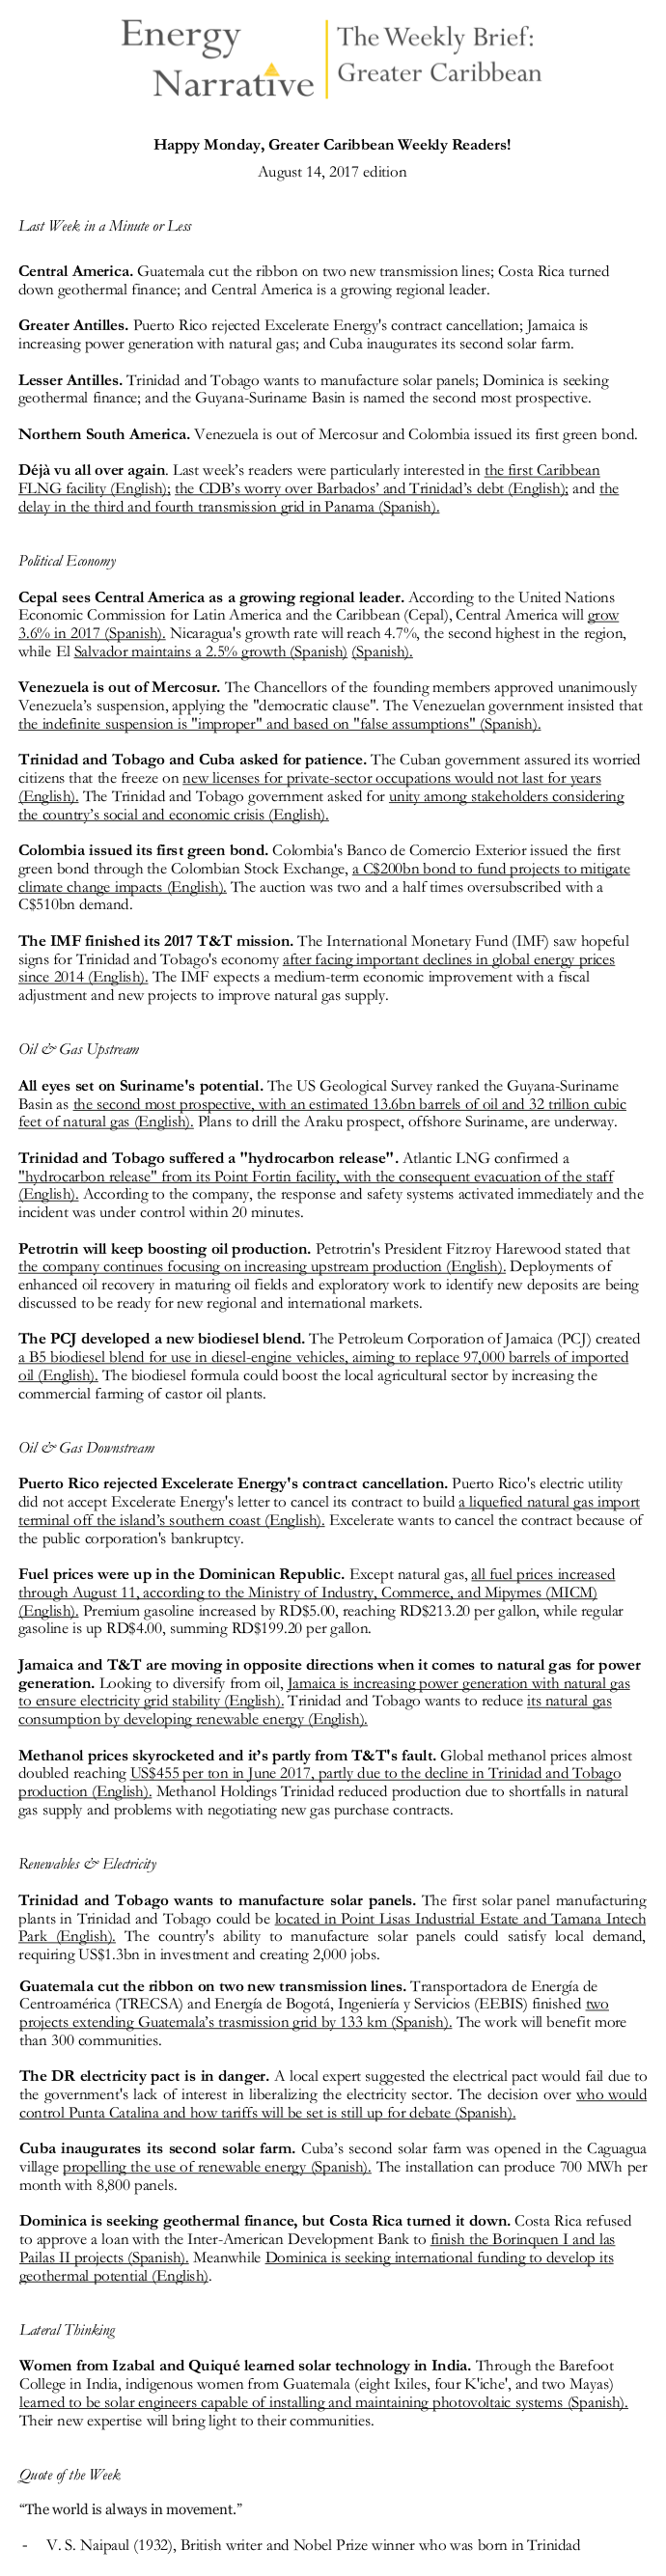 A sample of the August 14, 2017 edition of the Weekly Brief: Greater Caribbean